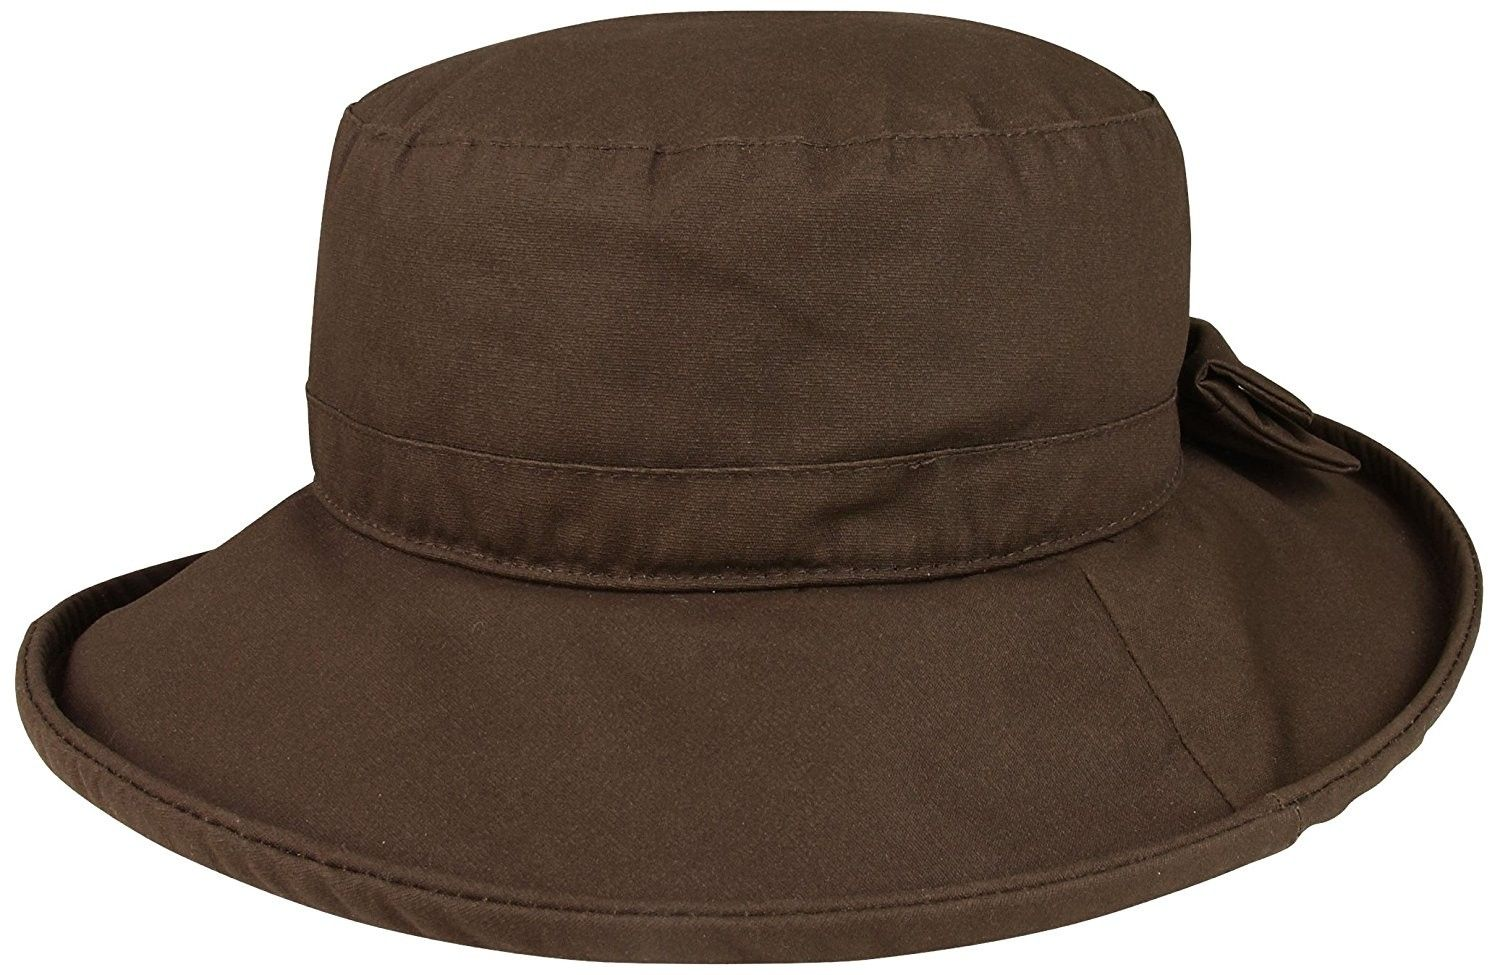 211c0e833 Women's Waxed Cotton Canvas Wide Brim Bucket Hat - Brown ...